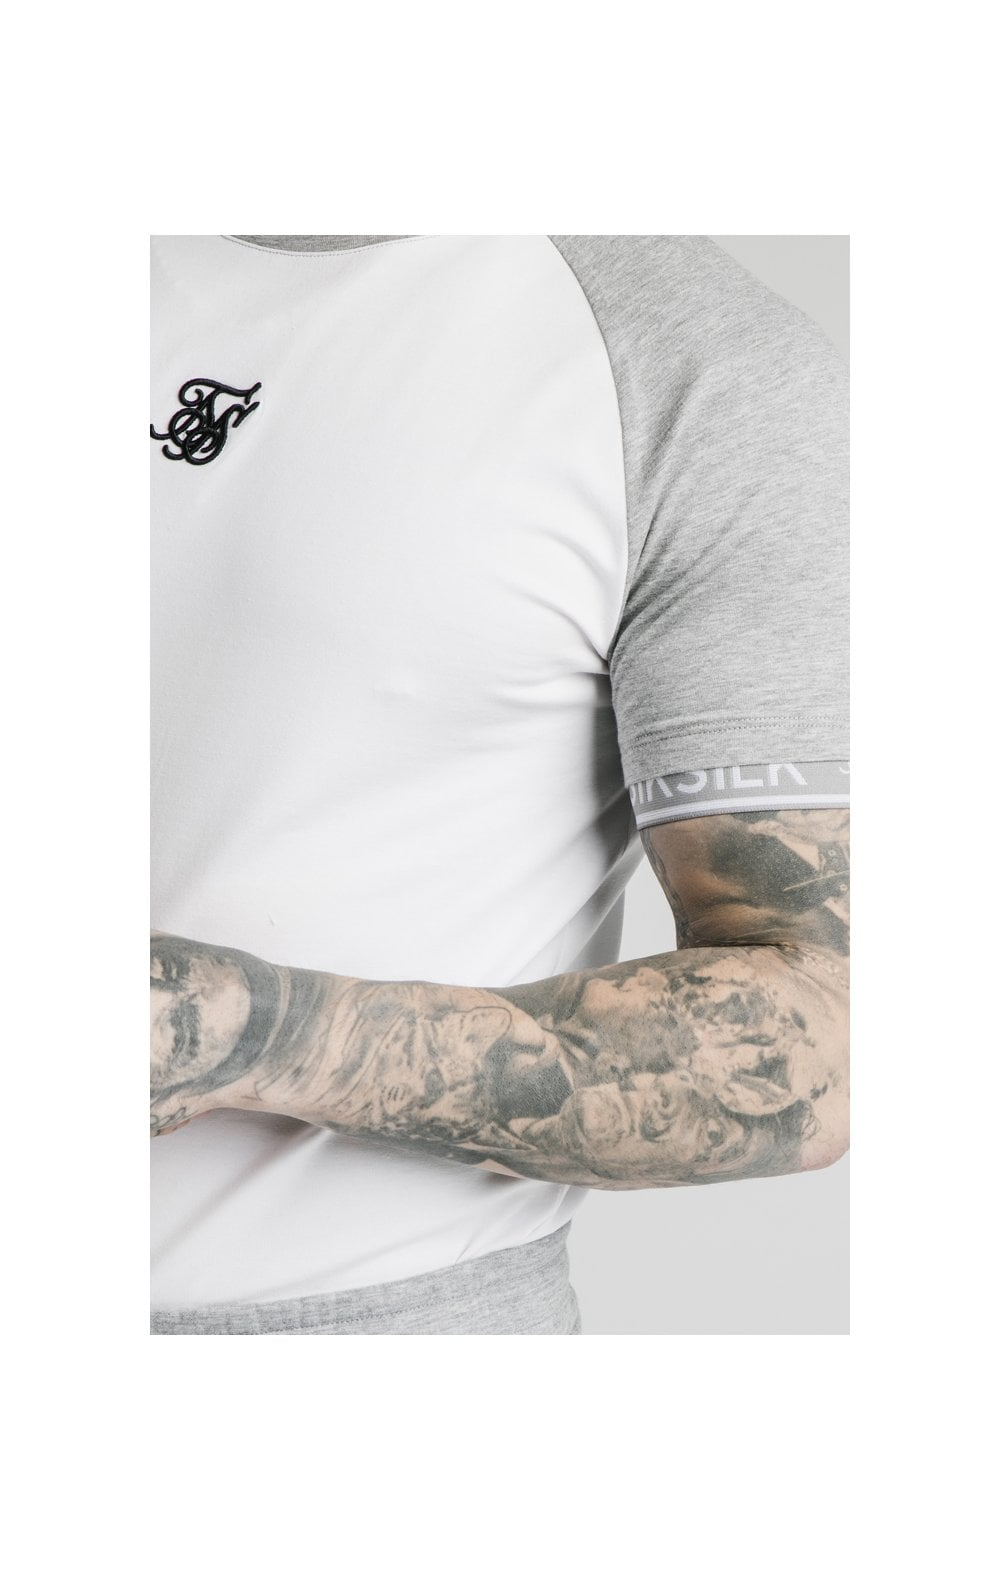 Load image into Gallery viewer, SikSilk S/S Raglan Inset Cuff Gym Tee - White & Grey Marl (1)